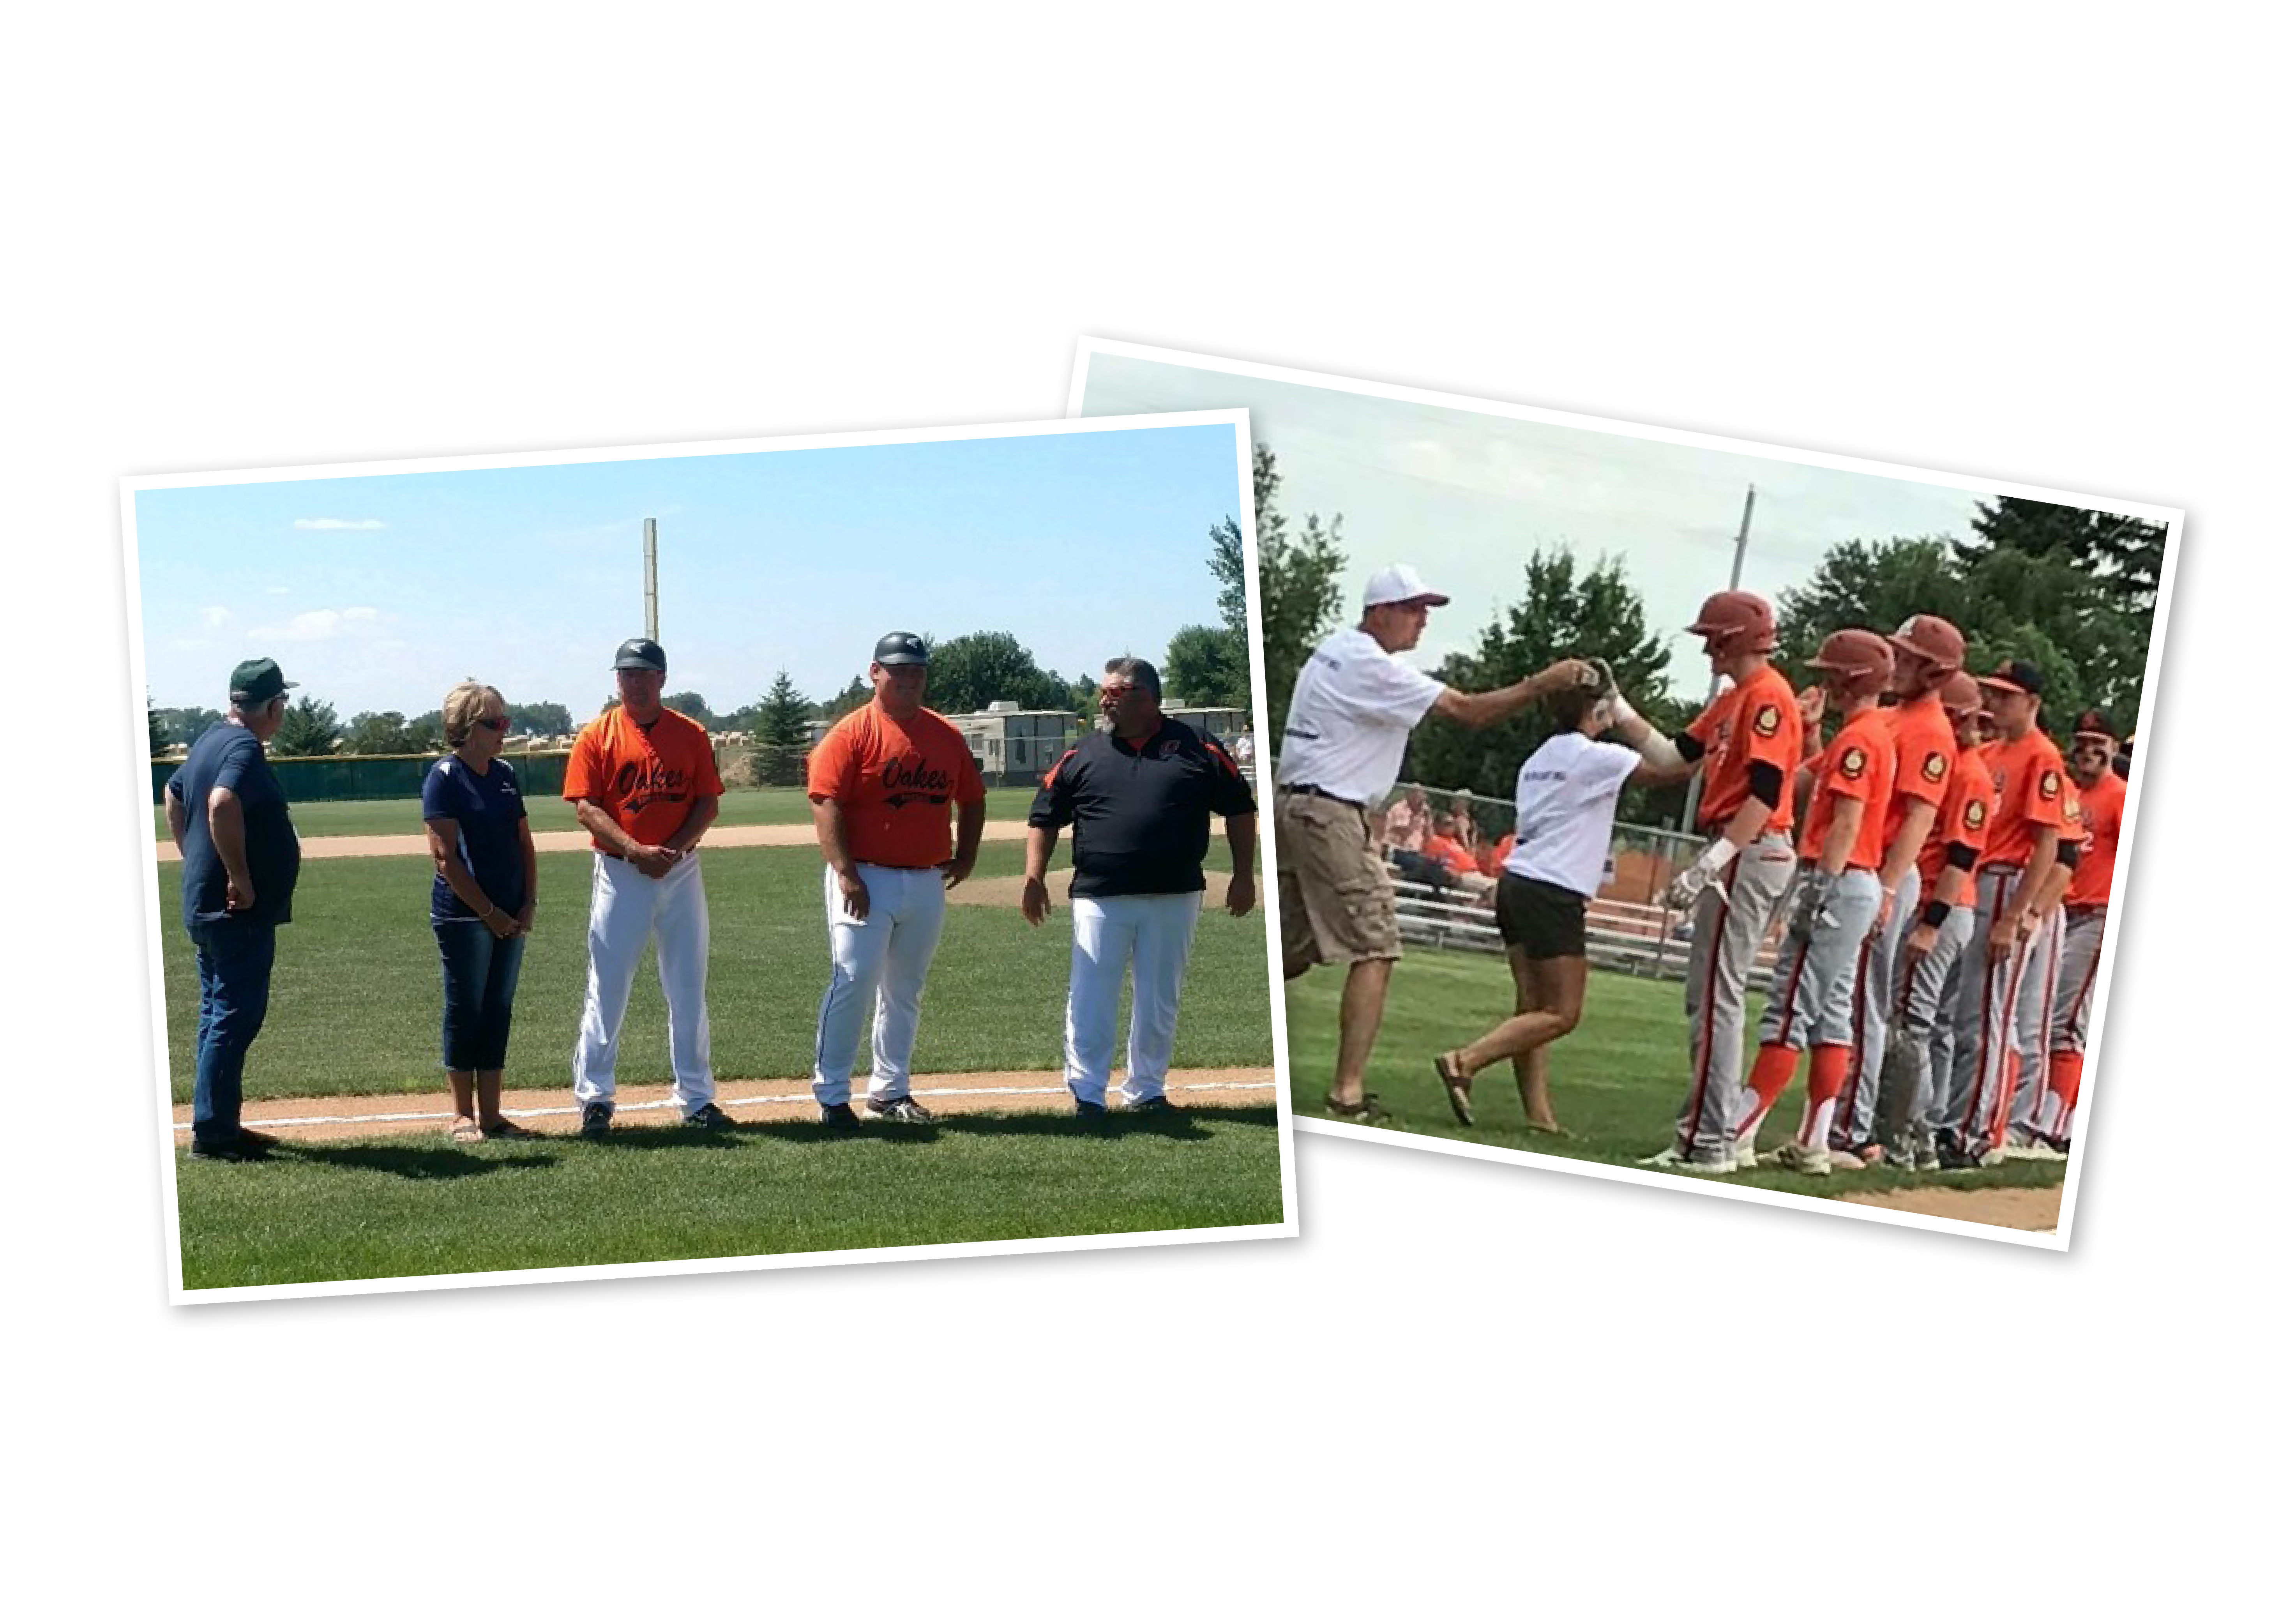 Baseball players and coaches line the bases